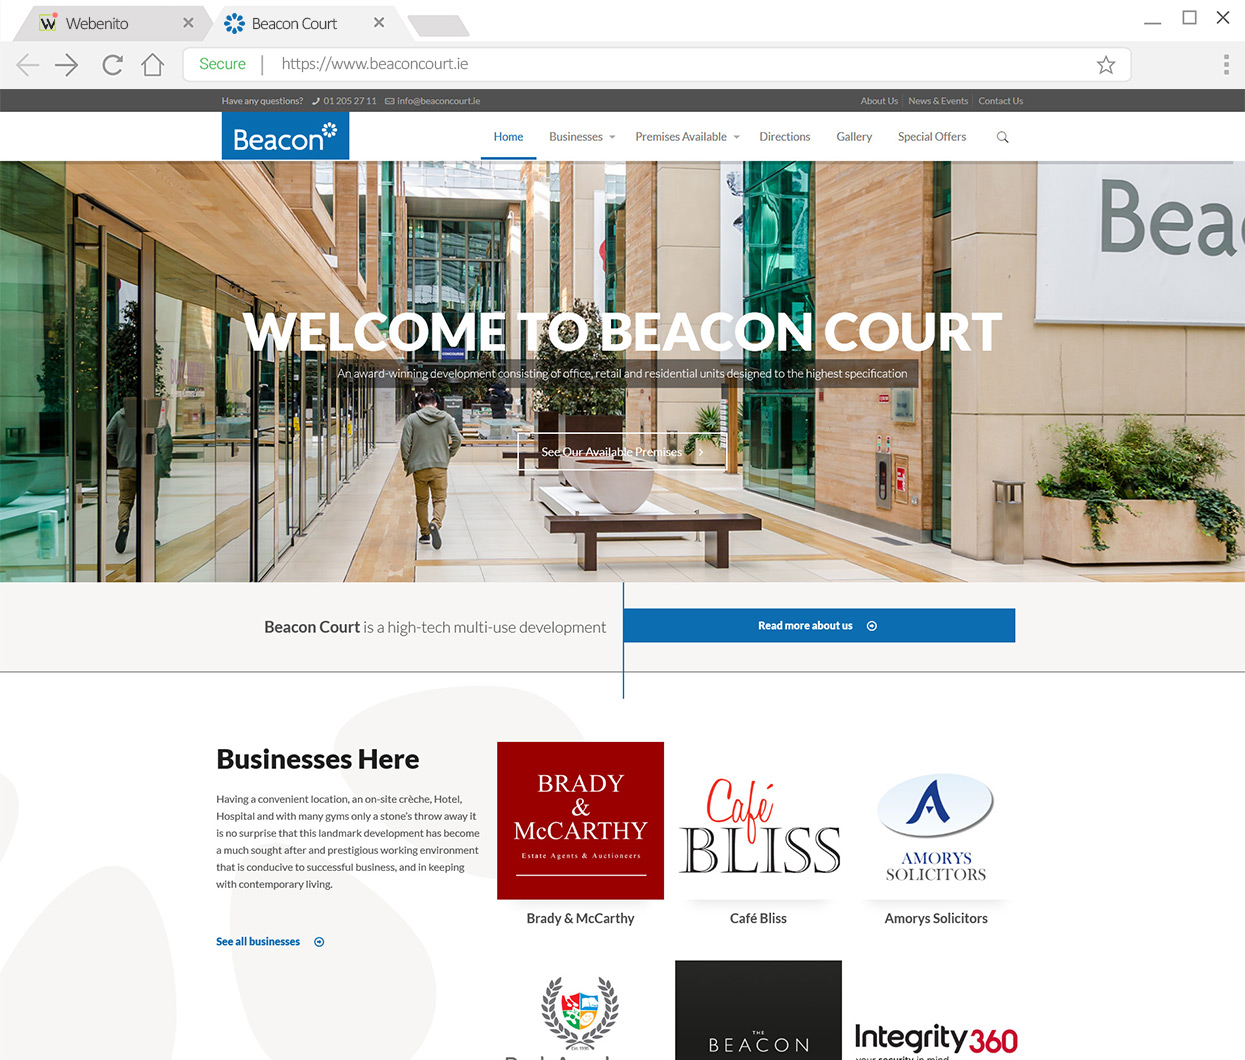 Webenito Case Study - Beacon Court